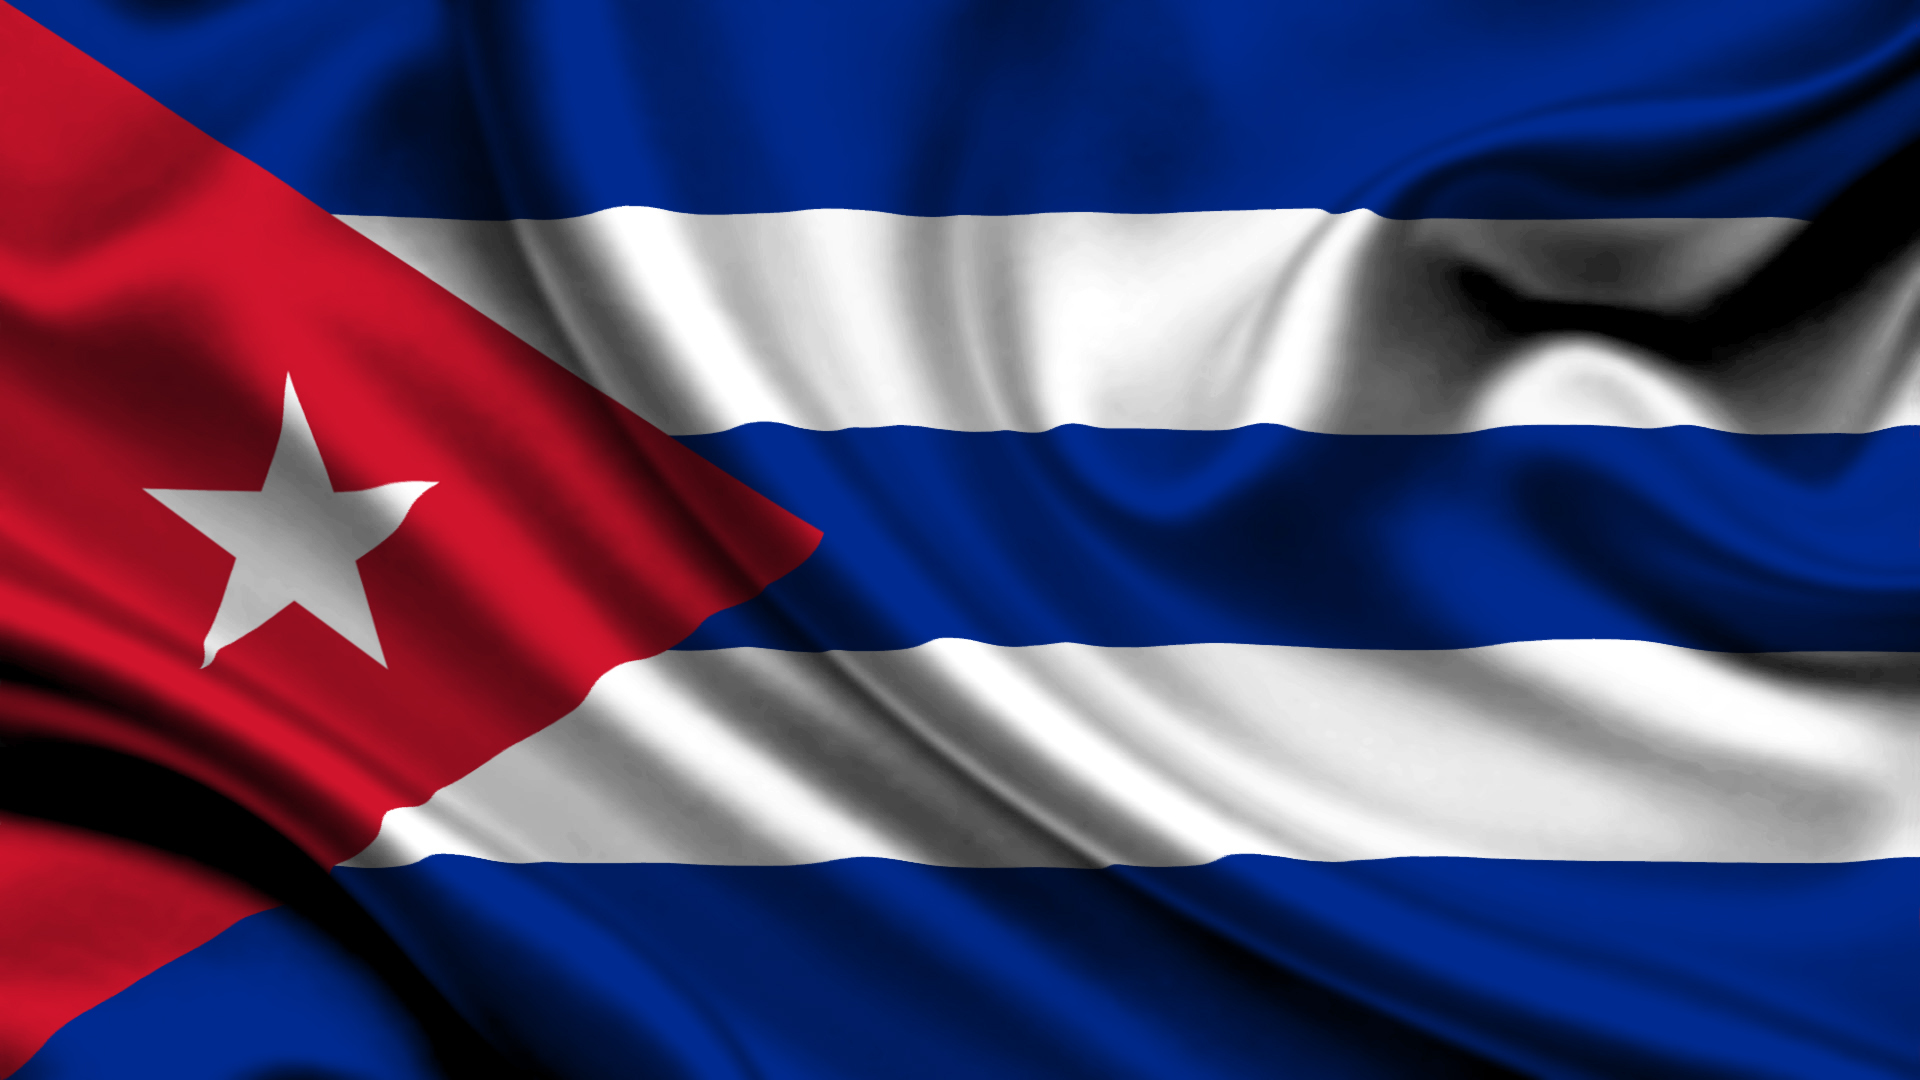 Amazing Flag Of Cuba Pictures & Backgrounds